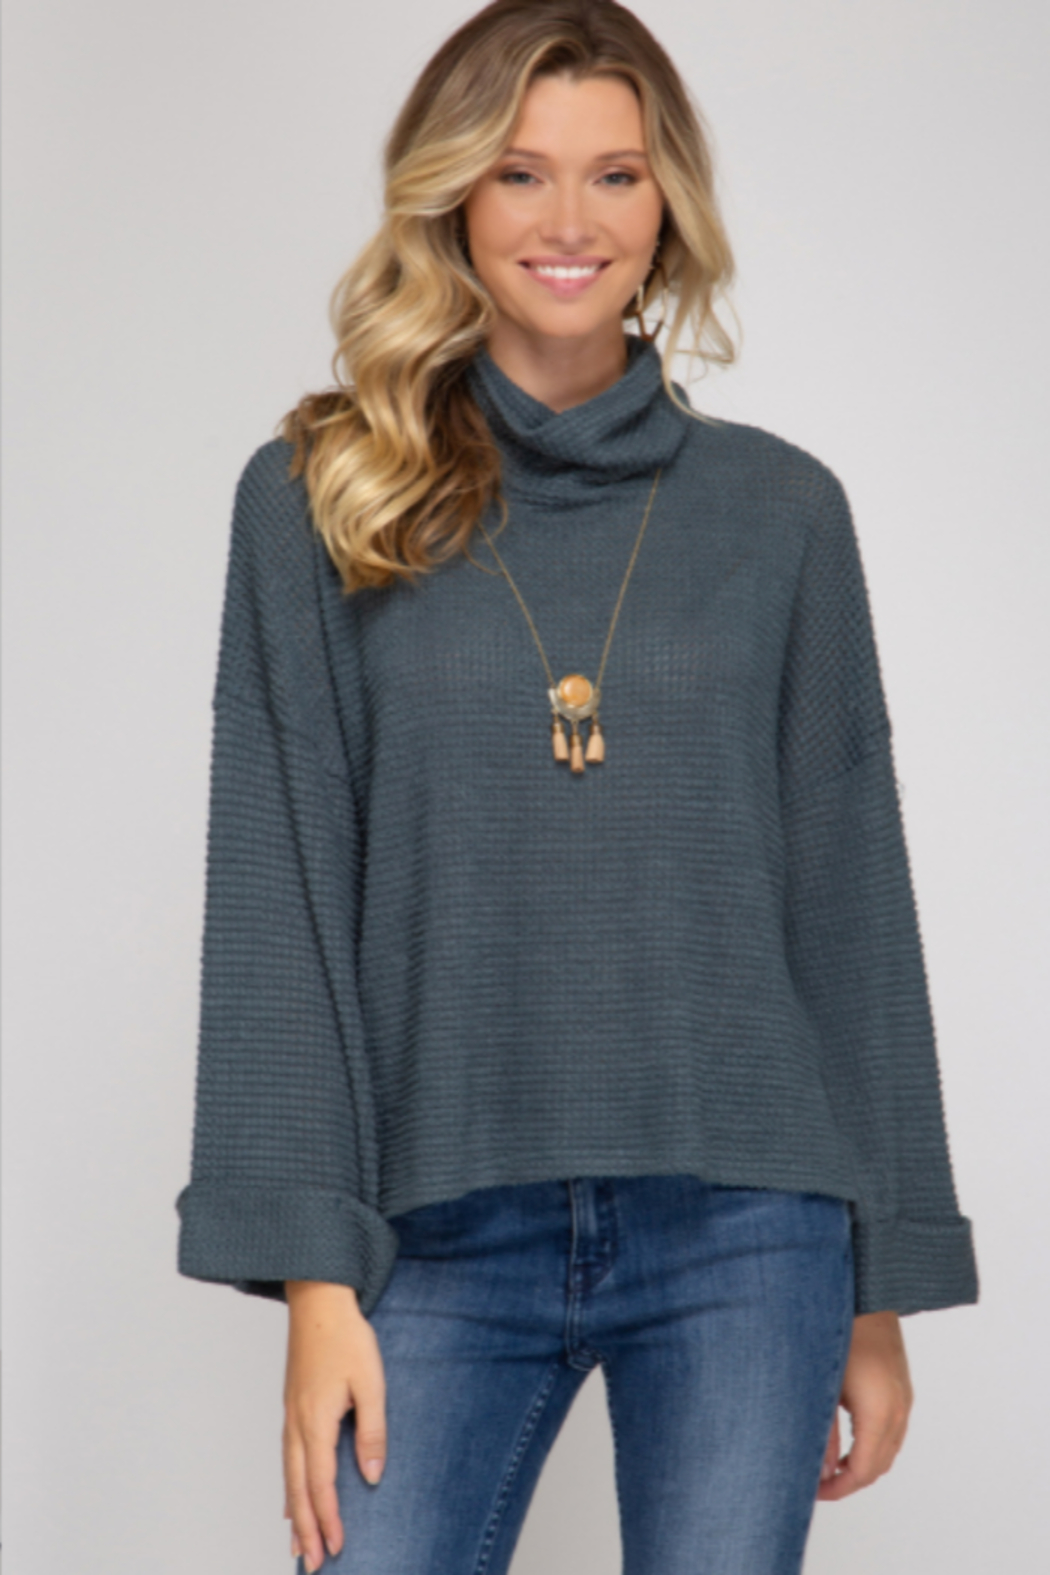 She and Sky L/S TURTLE NECK KNIT TOP - Main Image